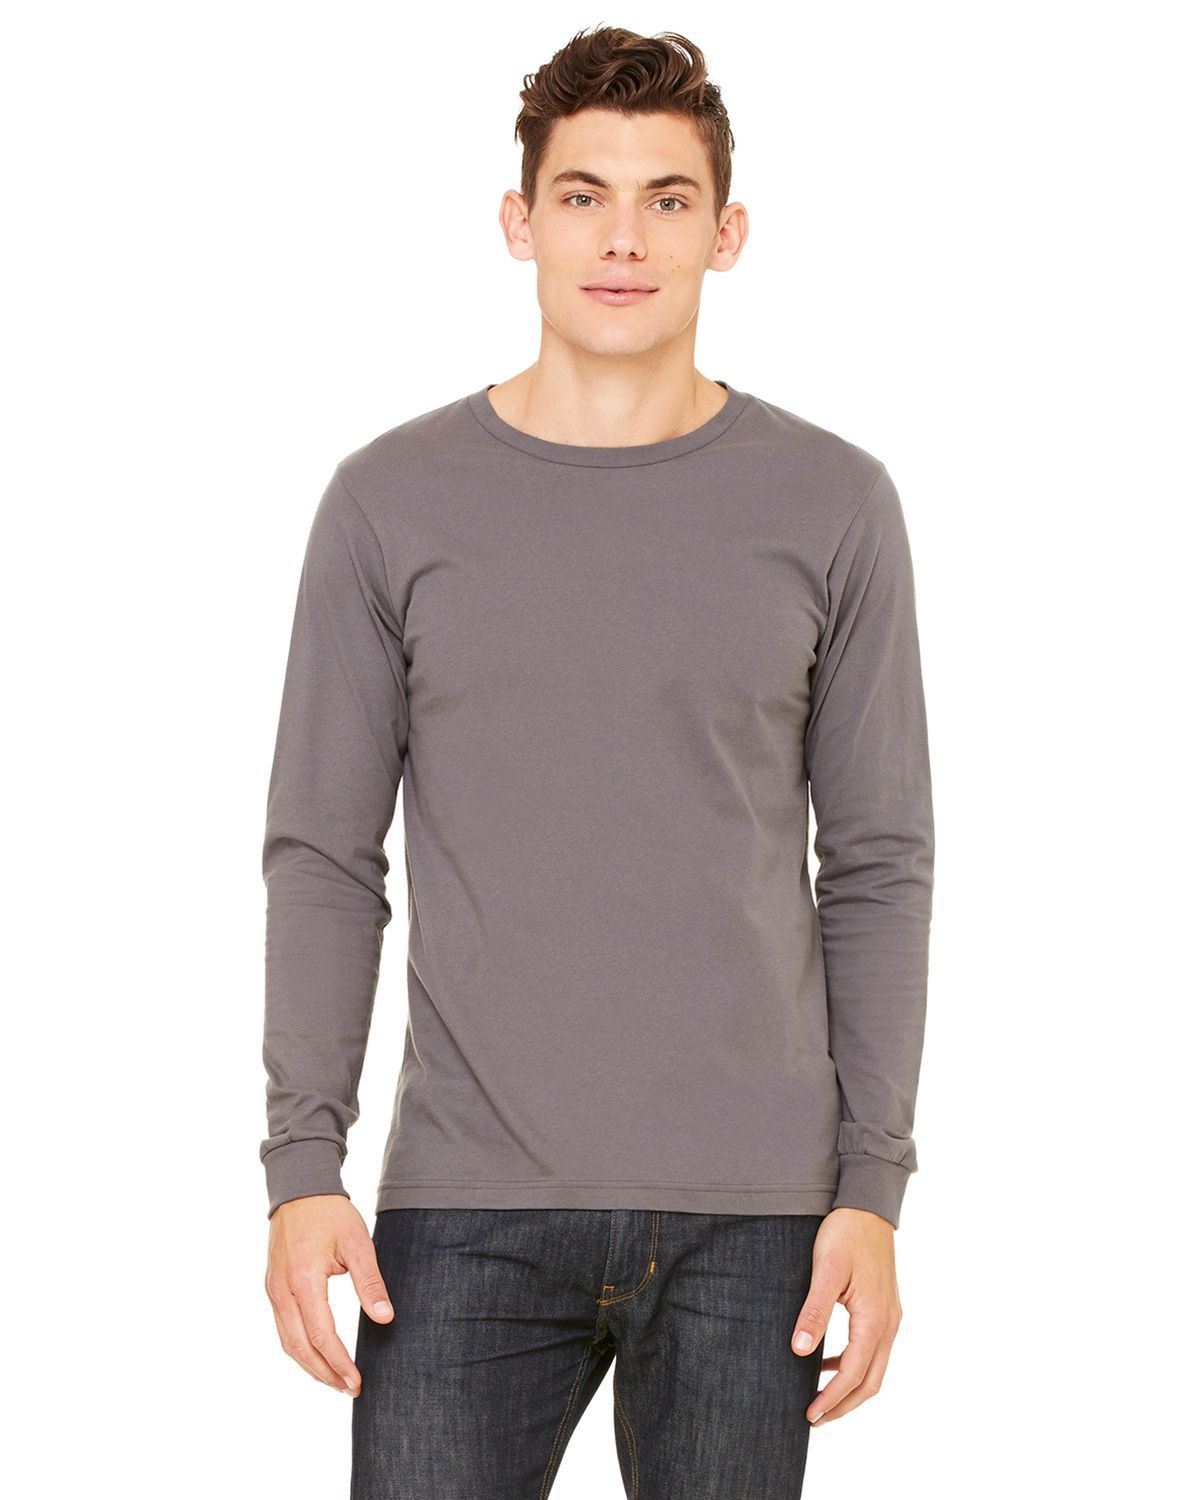 Bella + Canvas 3501 Men's Jersey Long-Sleeve T-Shirt - Asphalt - XS from Bella + Canvas